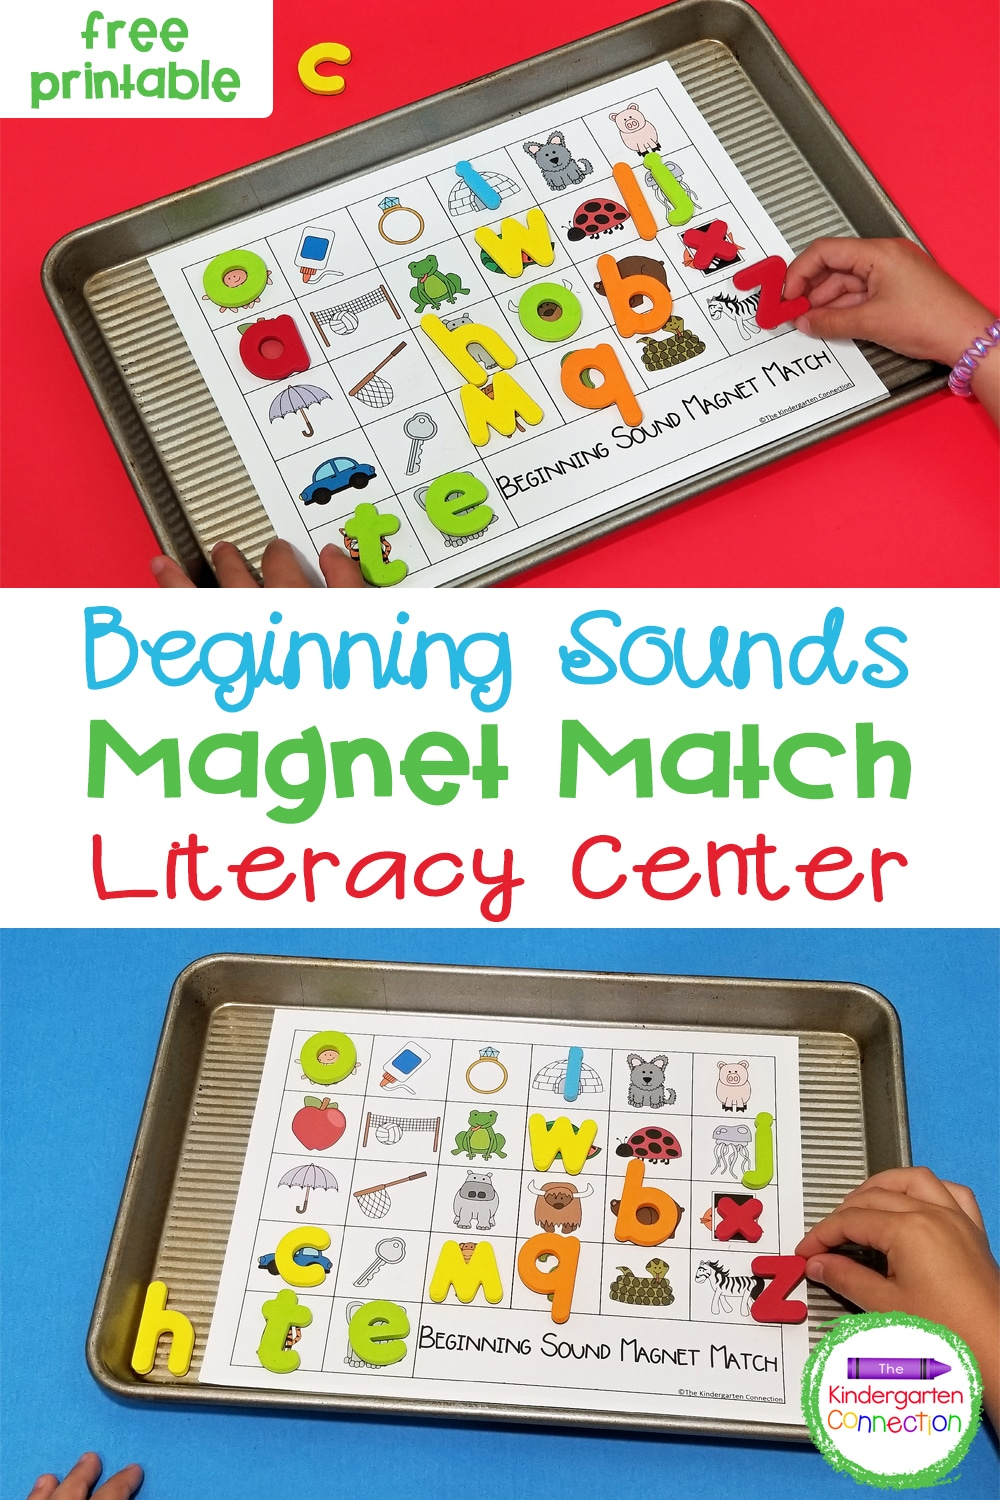 Work on letters and sounds with this super fun and free Alphabet Magnets Beginning Sound Match for Pre-K & Kindergarten!